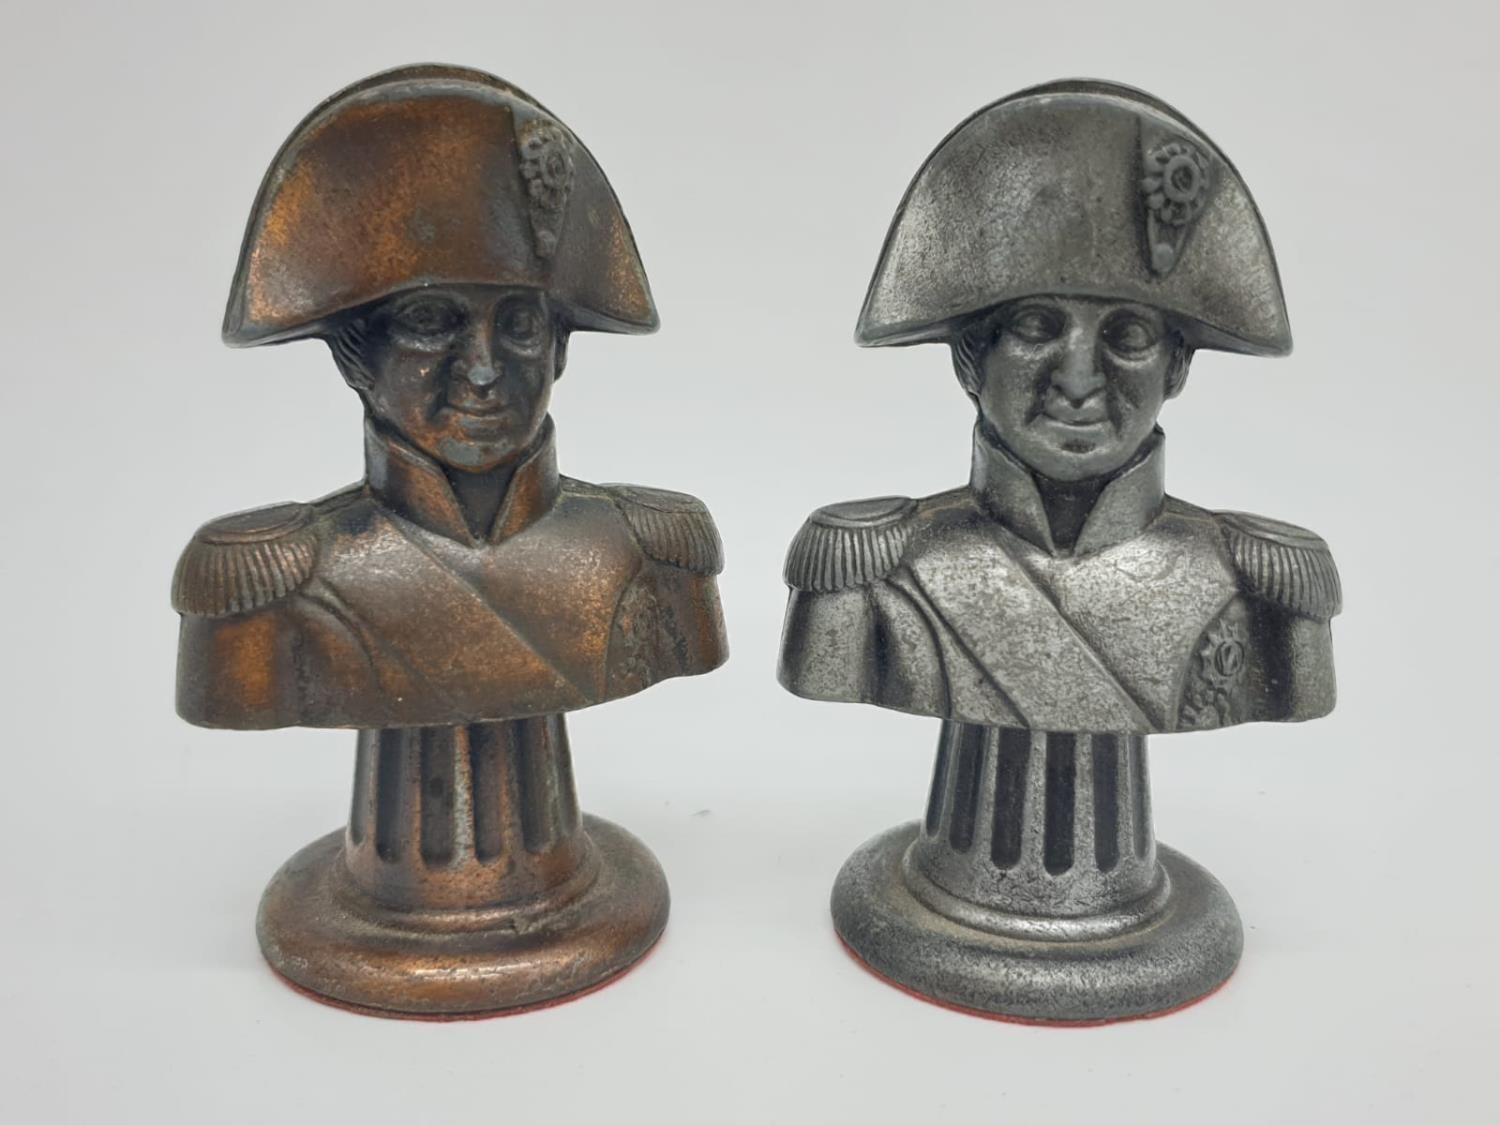 Metal CHESS SET Napoleonic Themed pieces. Napoleon 7.5 cm tall. Play on a square 3.5 cm. - Image 19 of 38